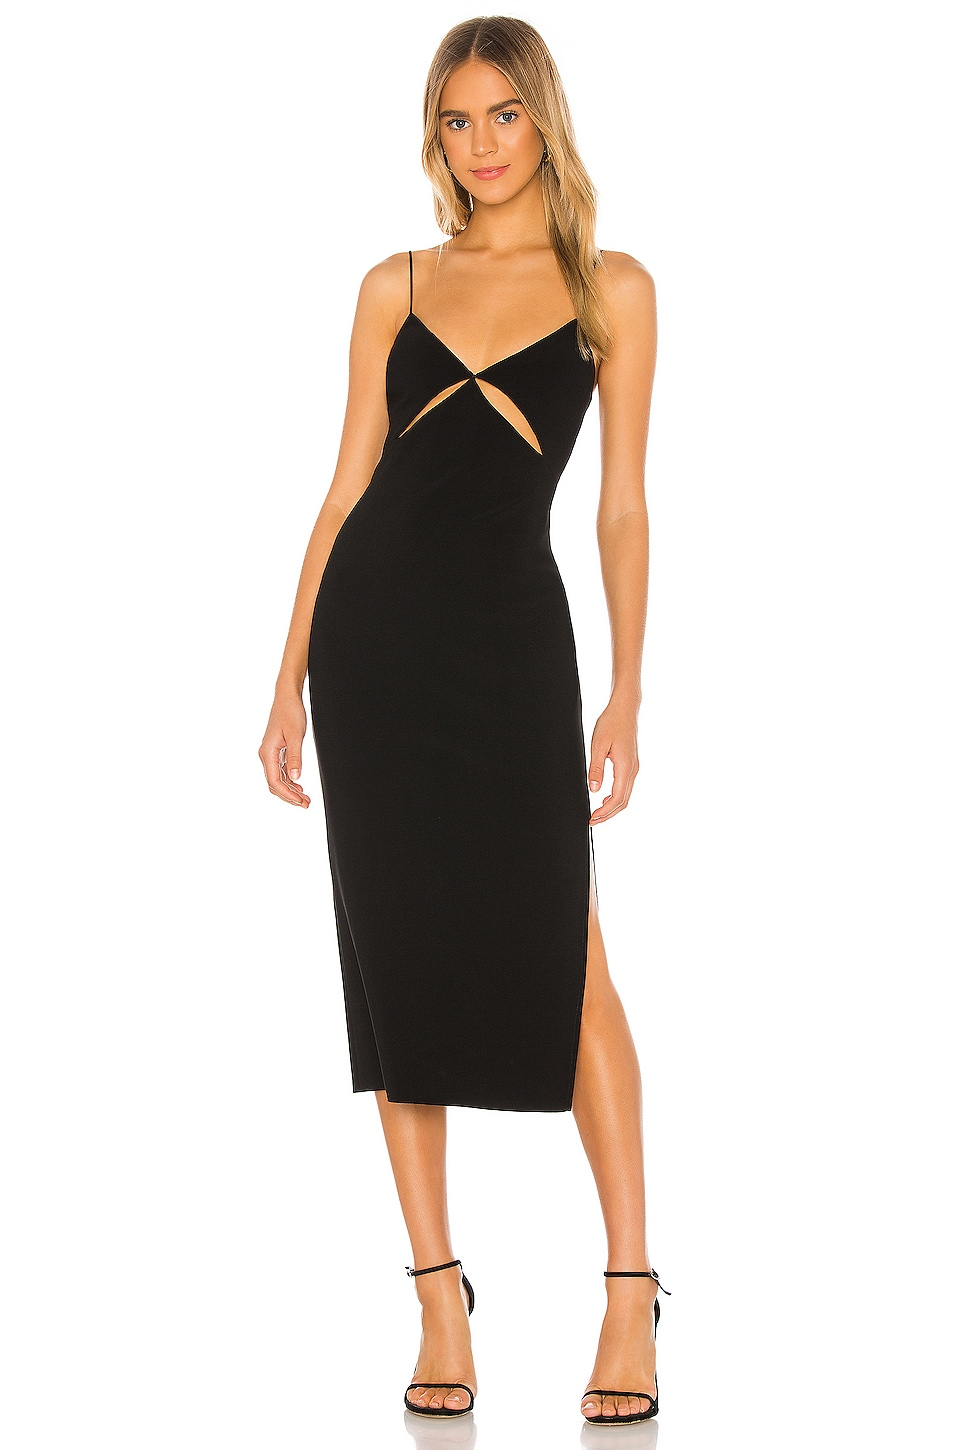 Emerald Avenue Midi Dress             BEC&BRIDGE                                                                                                       CA$ 399.73 4